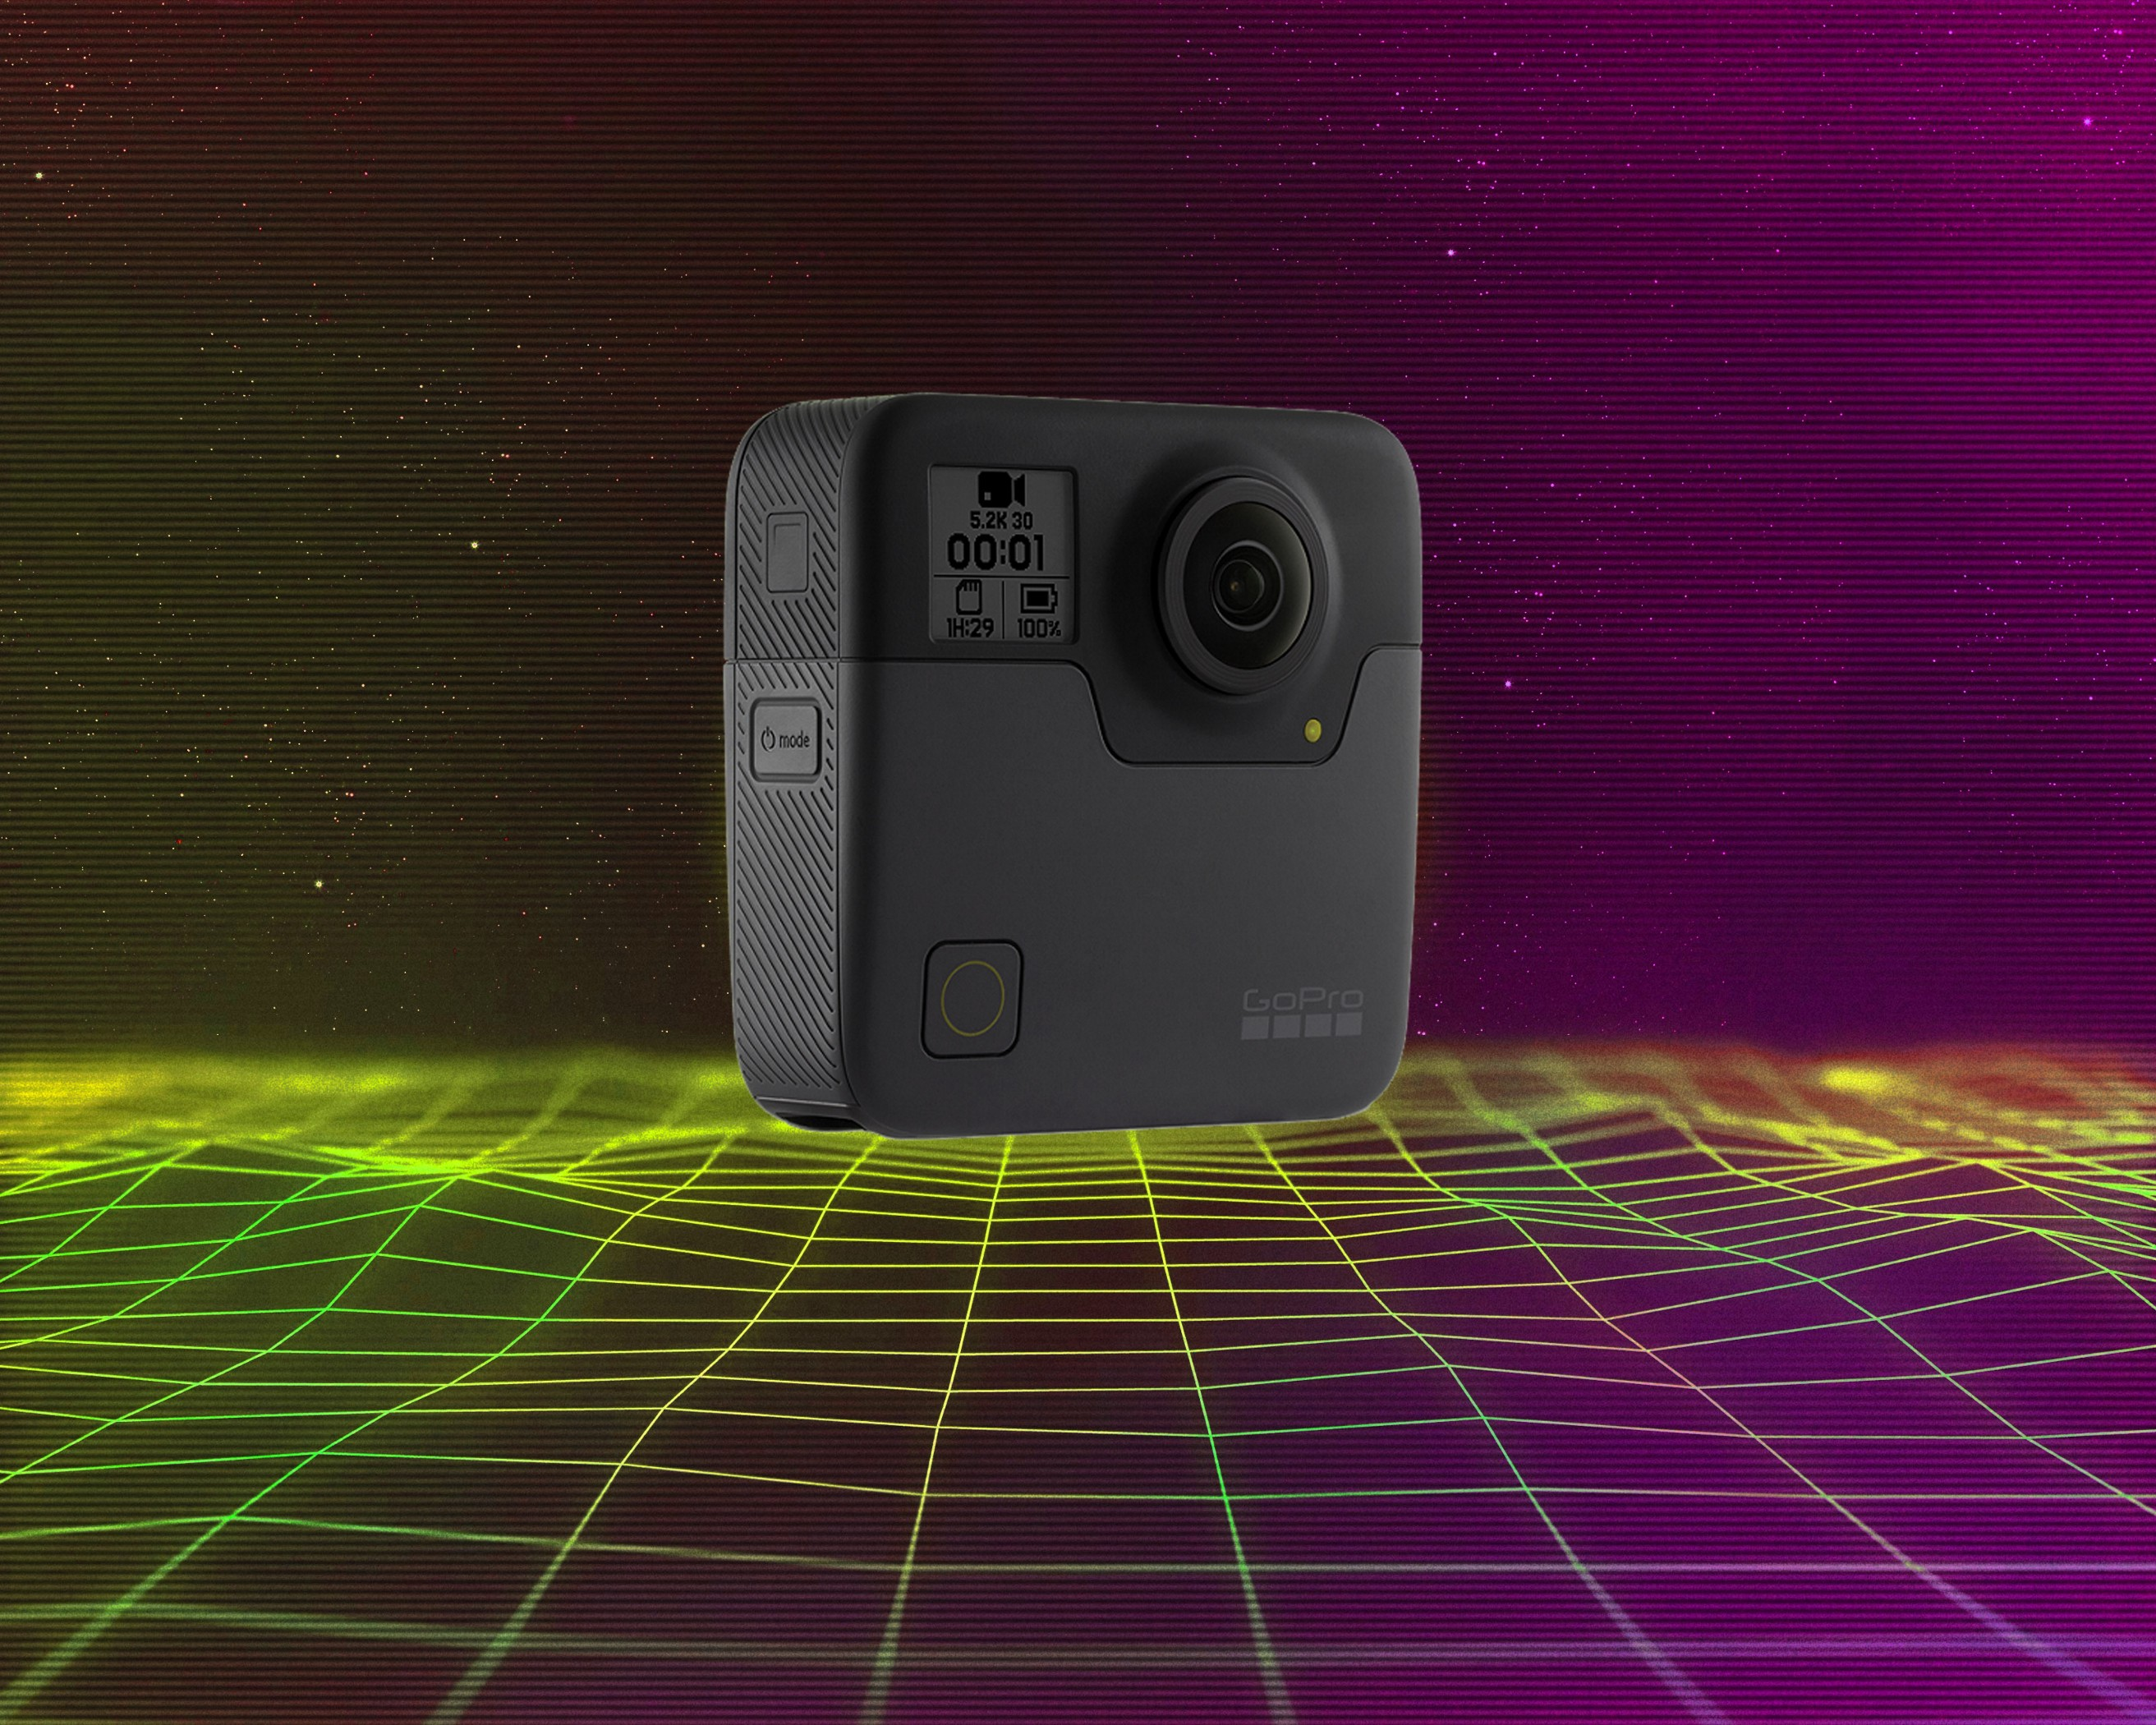 How to use GoPro Fusion on an unsupported device - Konrad Iturbe